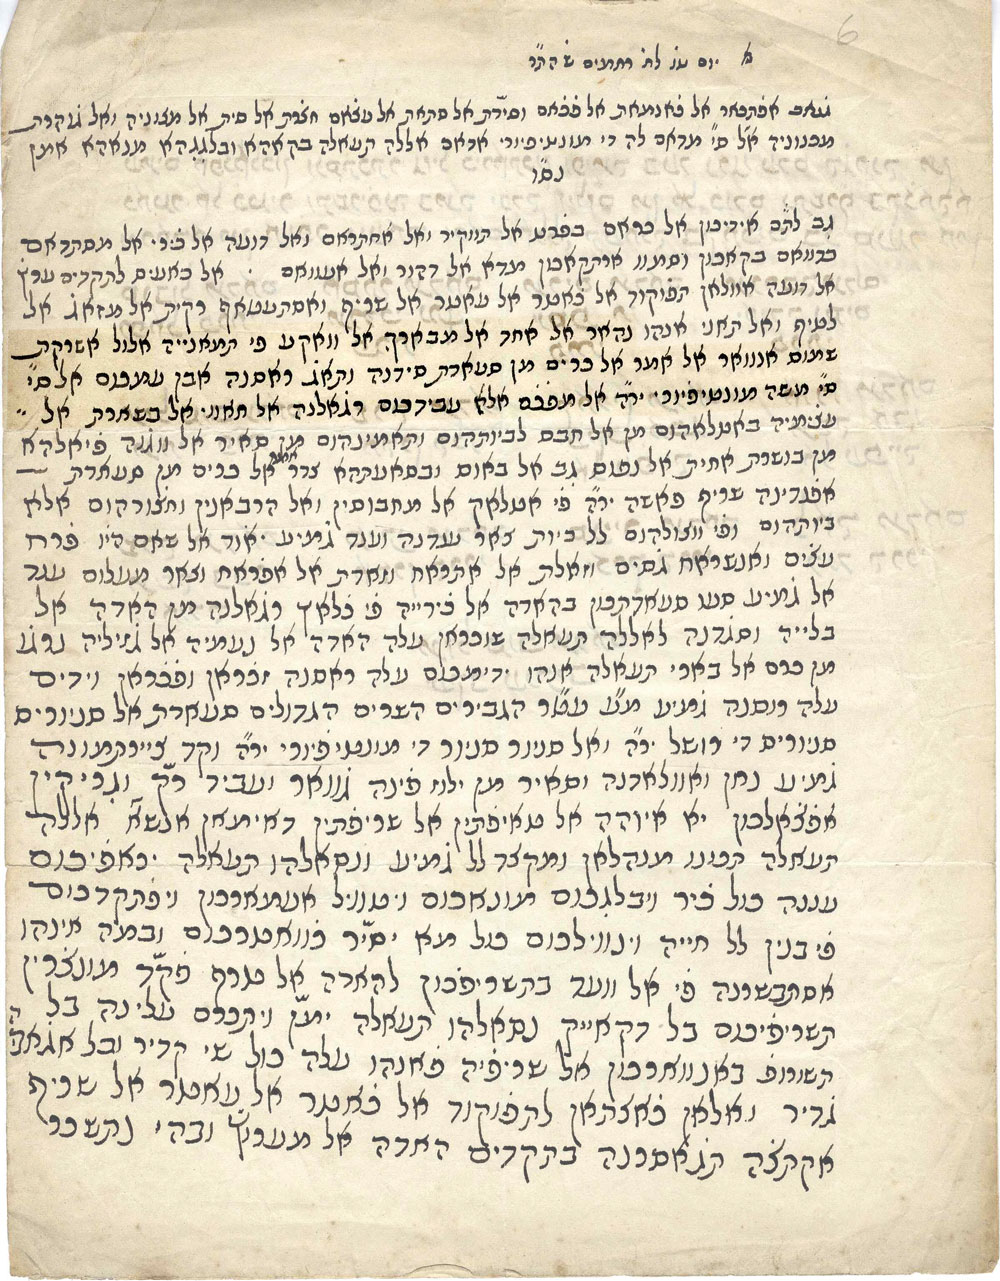 With thanks from Damascus. The letter addressed to Lady Montefiore by the wives of the accused Jews after their release